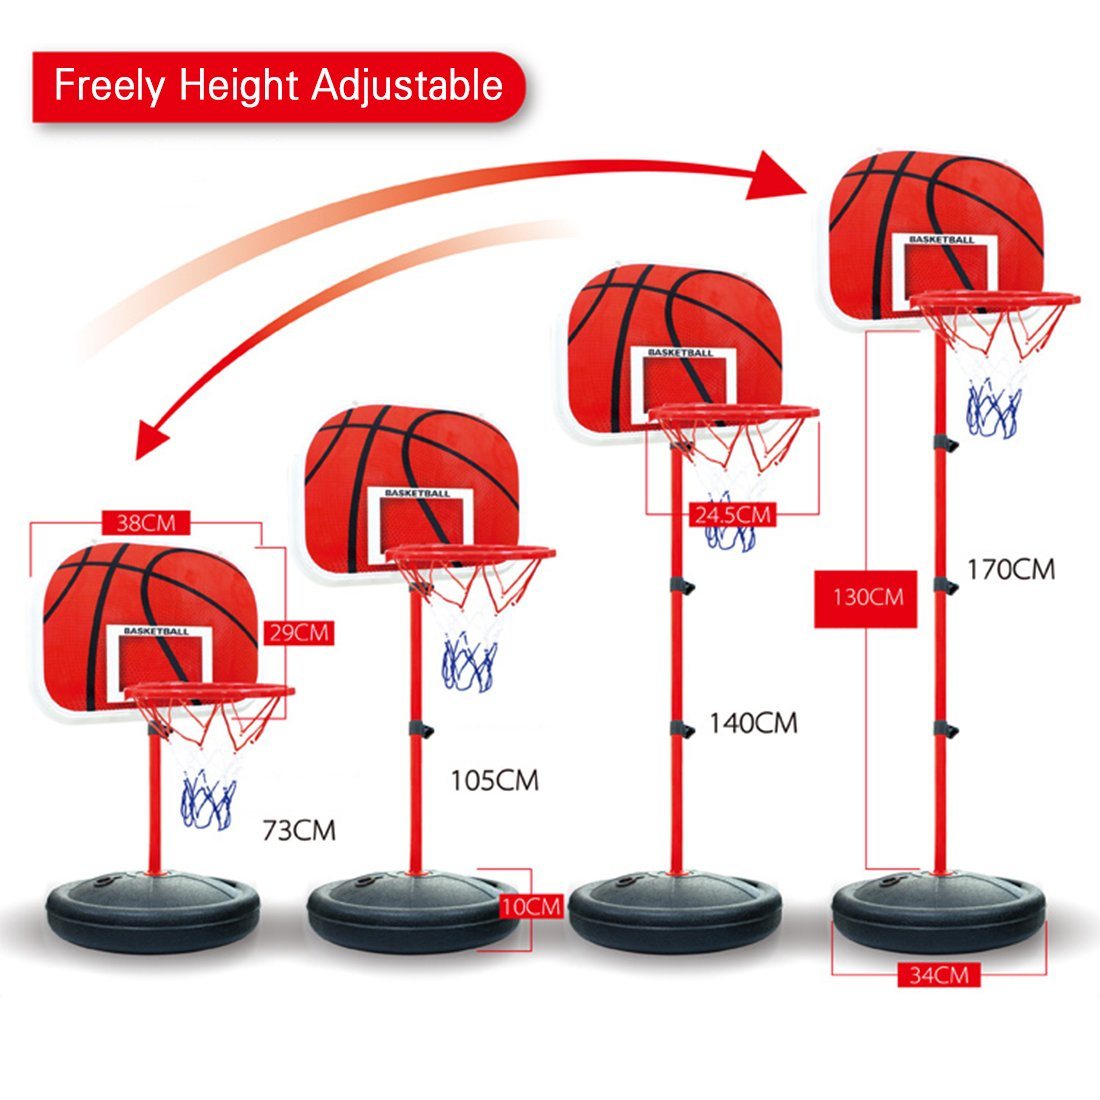 Basketball Stands, WOLFBUSH 73-170CM Basketball Stands Height Adjustable Kids Basketball Goal Hoop Toy Set - Black + Red